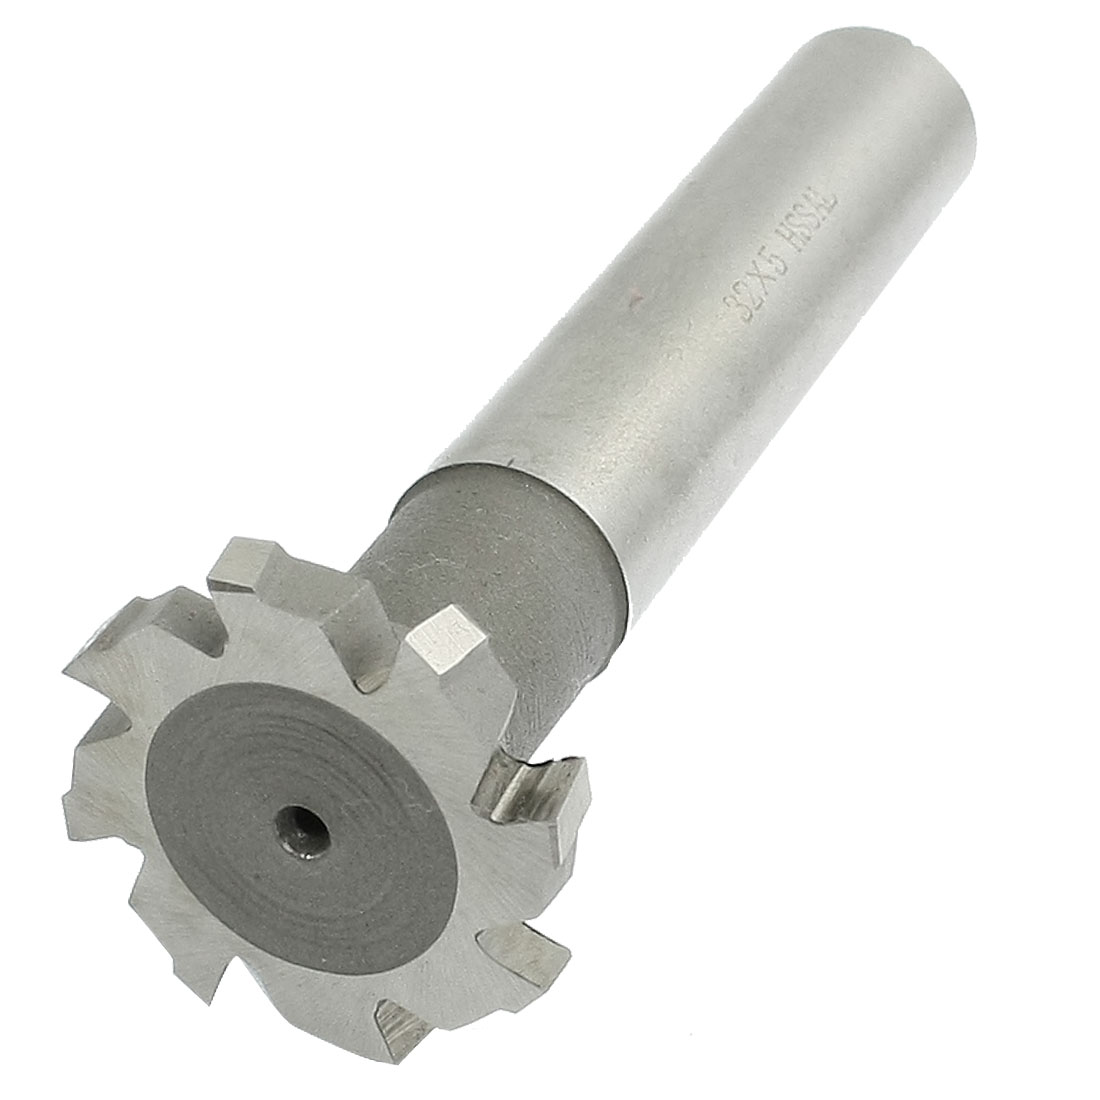 "Replacing 1 7/25"" x 1/5"" HSS 8 Flutes T Slot Cutter End Milling Cutter"